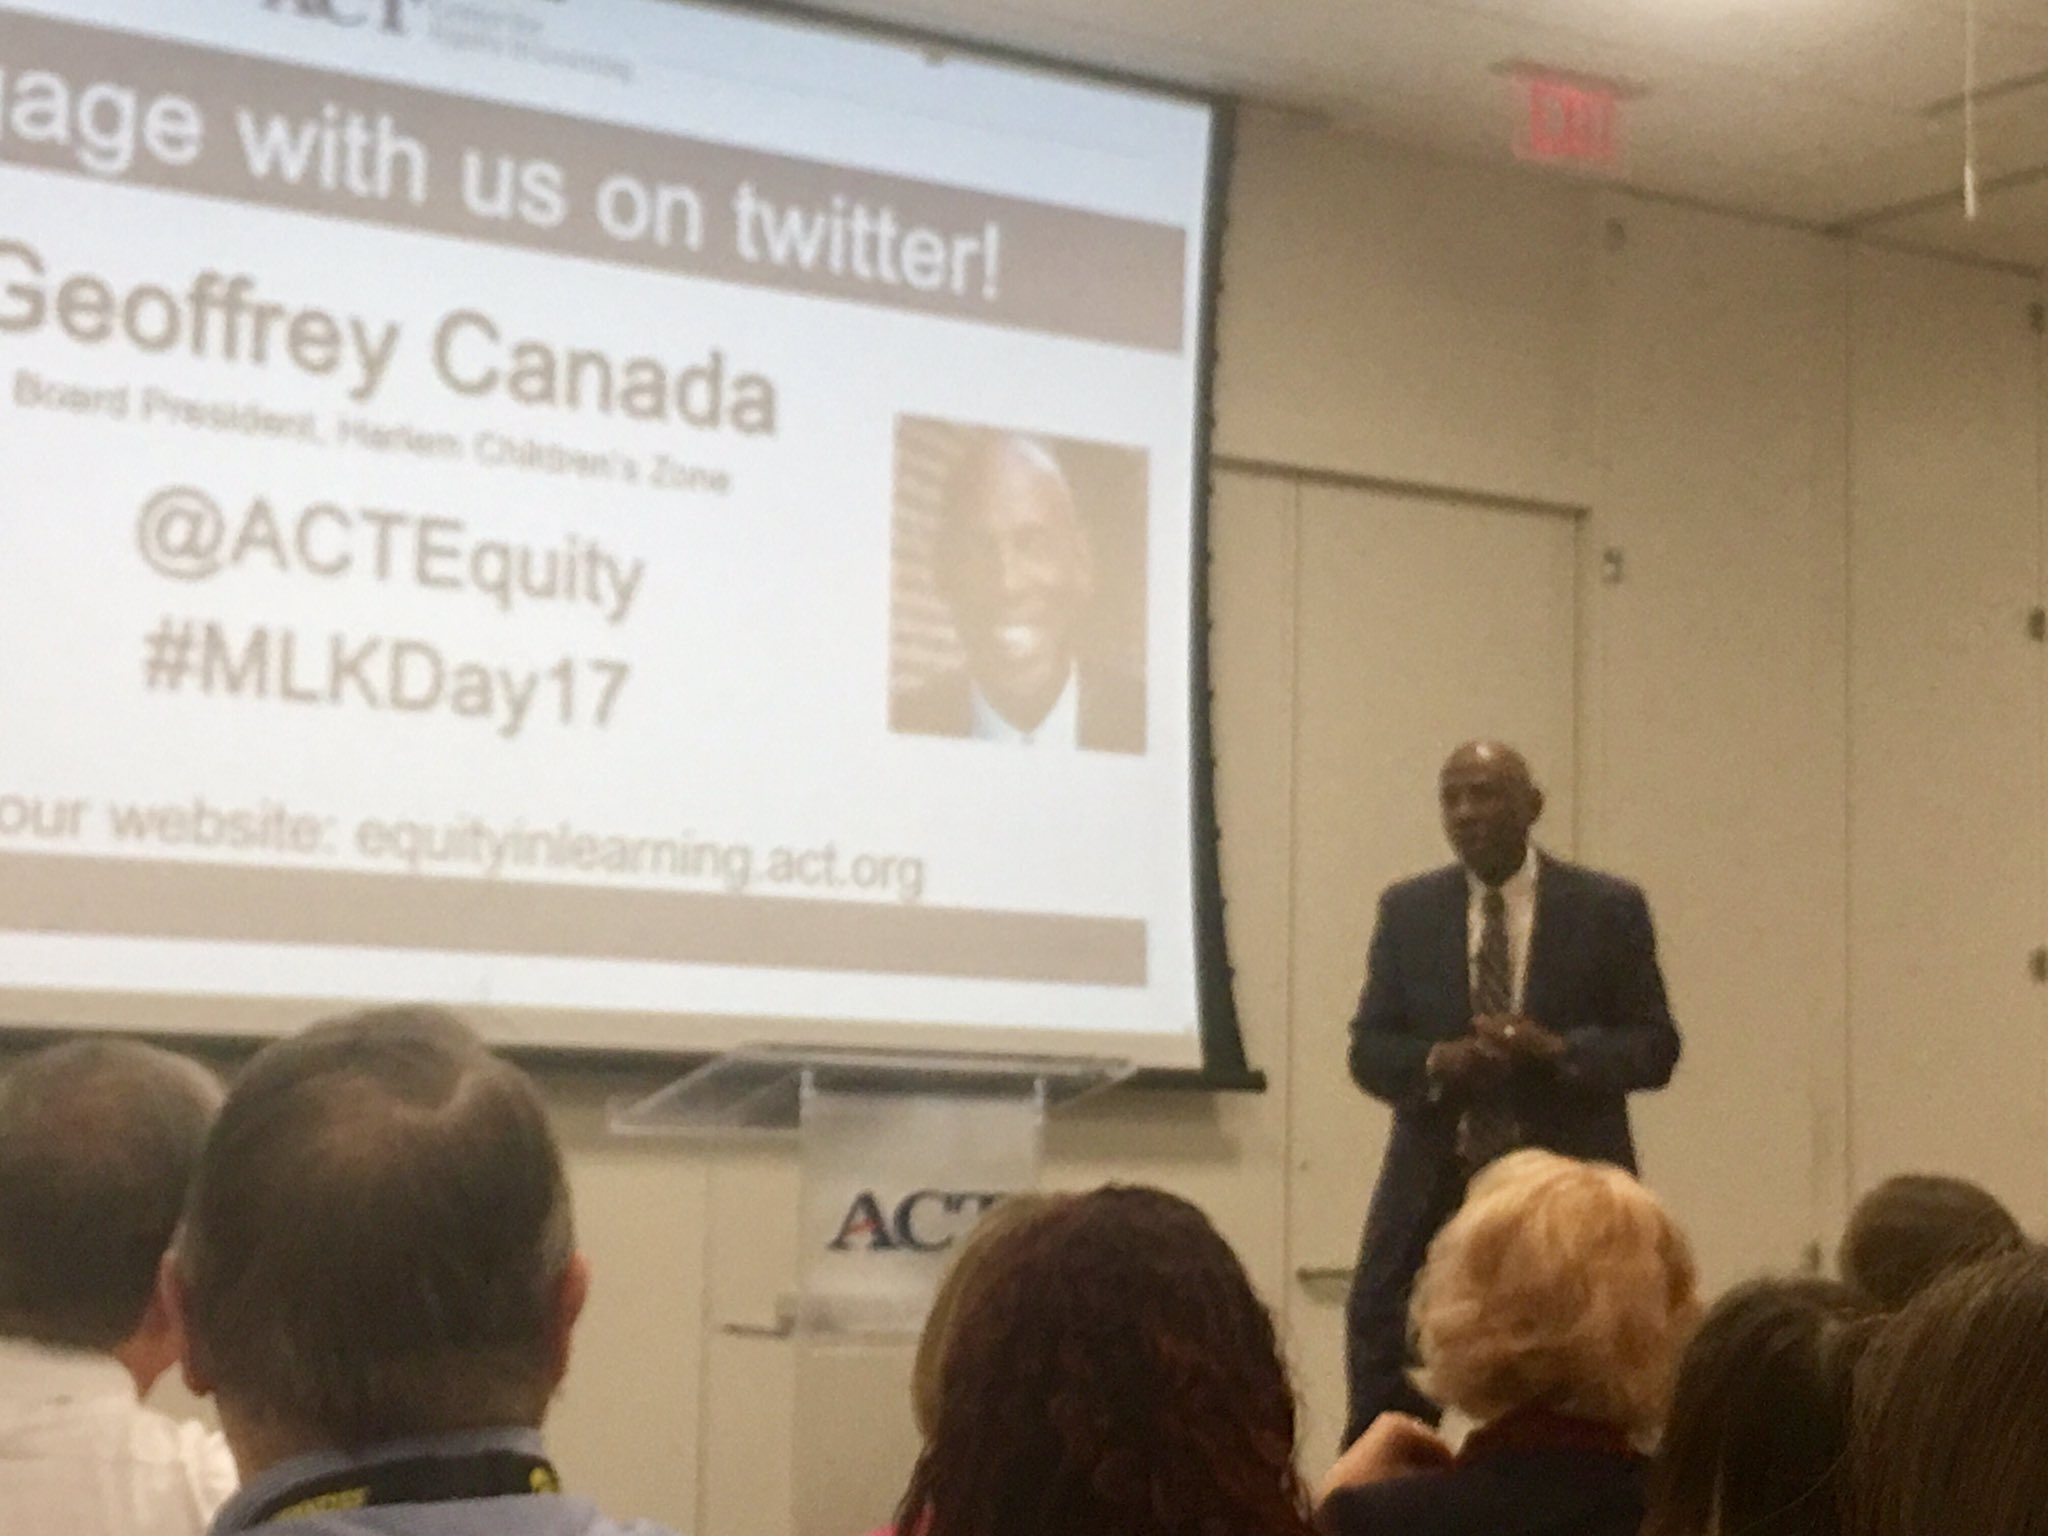 If you are a teacher and you can not do your job...change careers! Geoffrey Canada in doing what's right for students @ACTEquity @ACT https://t.co/flDOSiOlRw